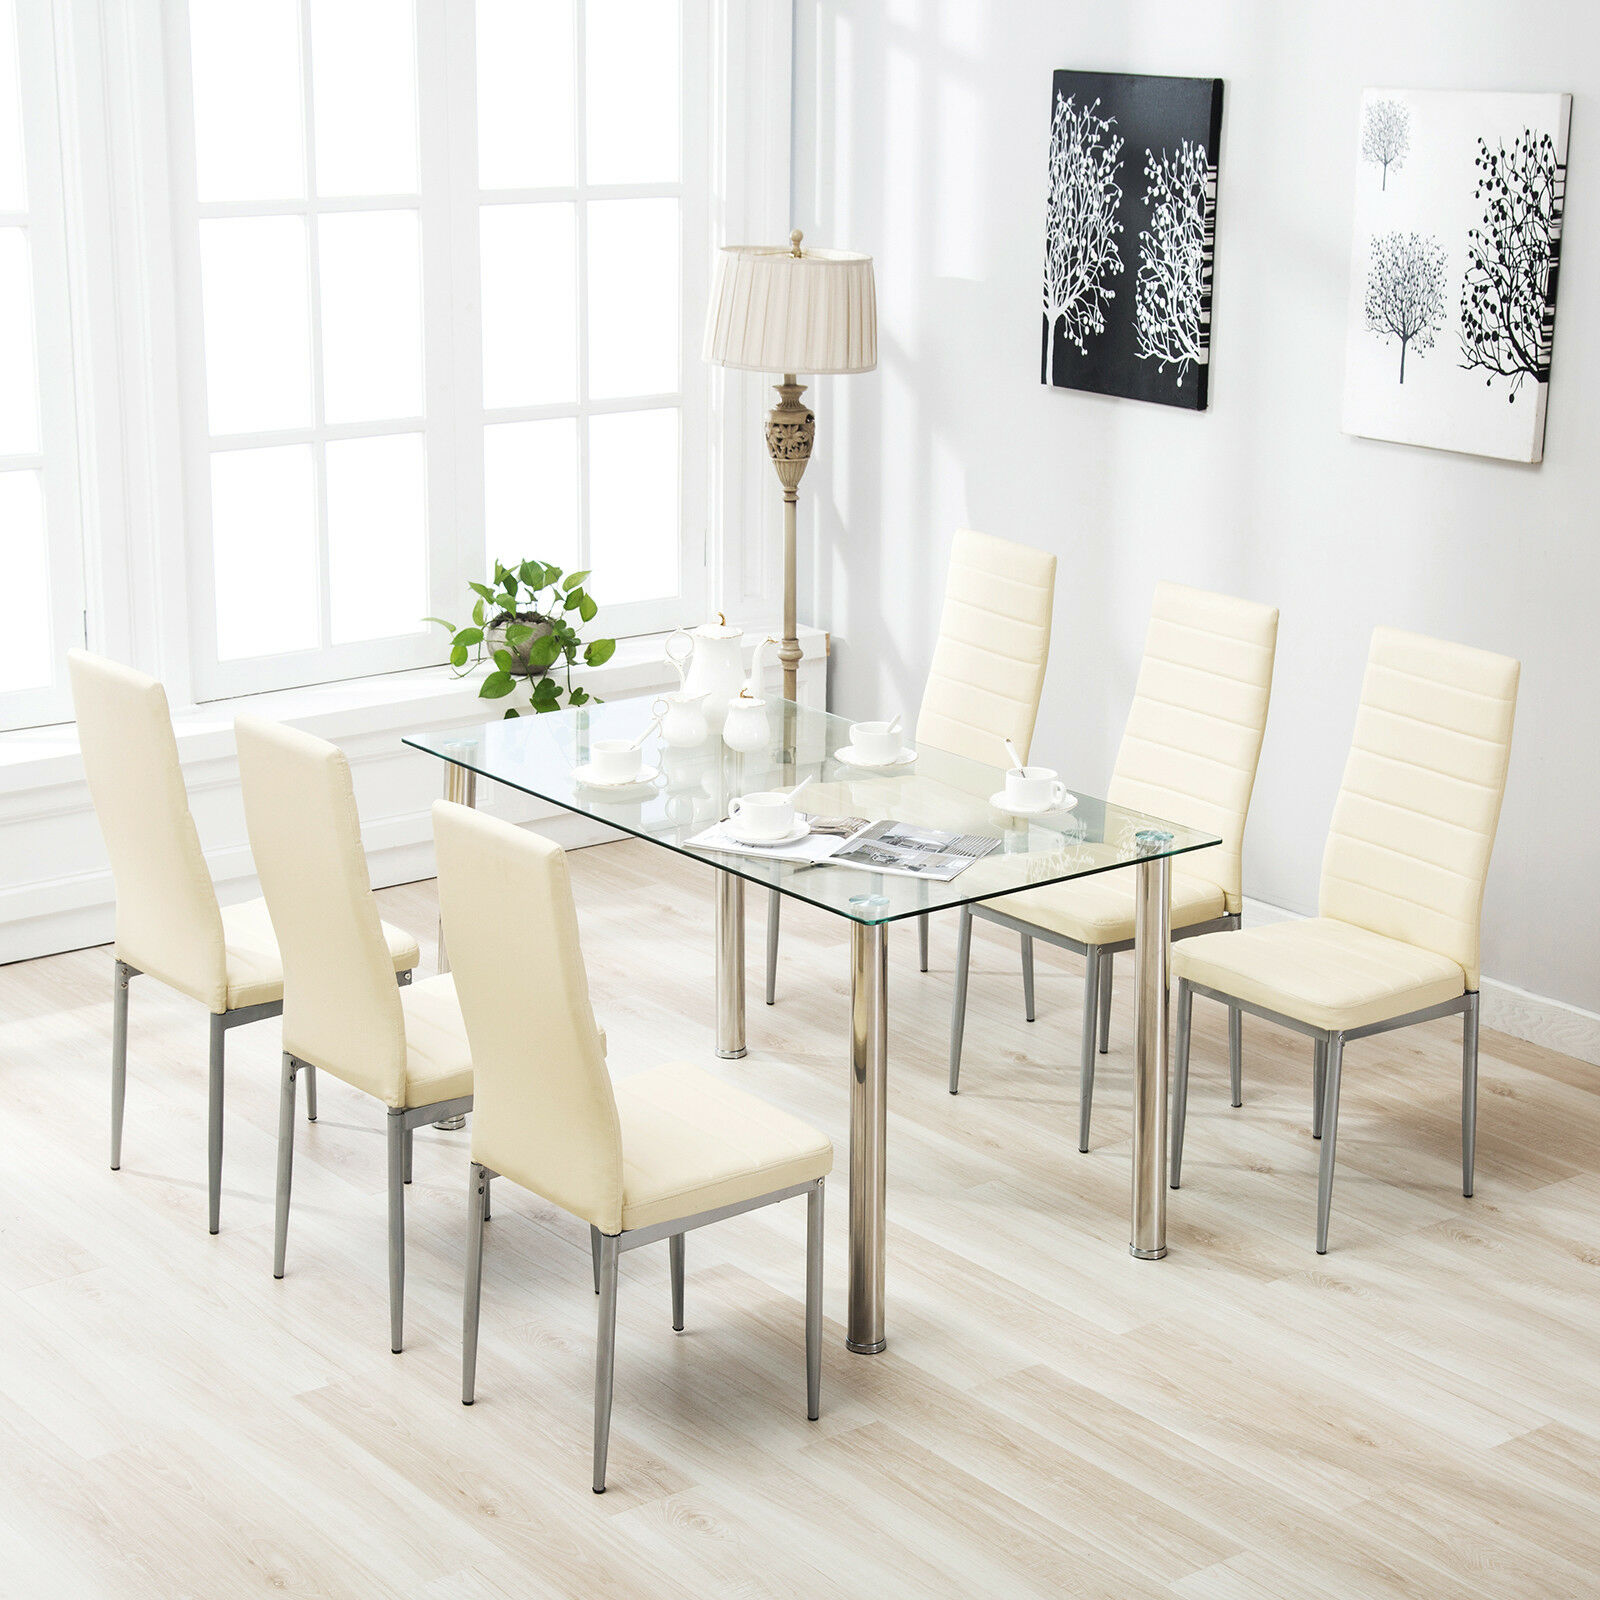 7 piece dining table set for 6 chairs clear glass metal kitchen room breakfast 1 of 12free shipping